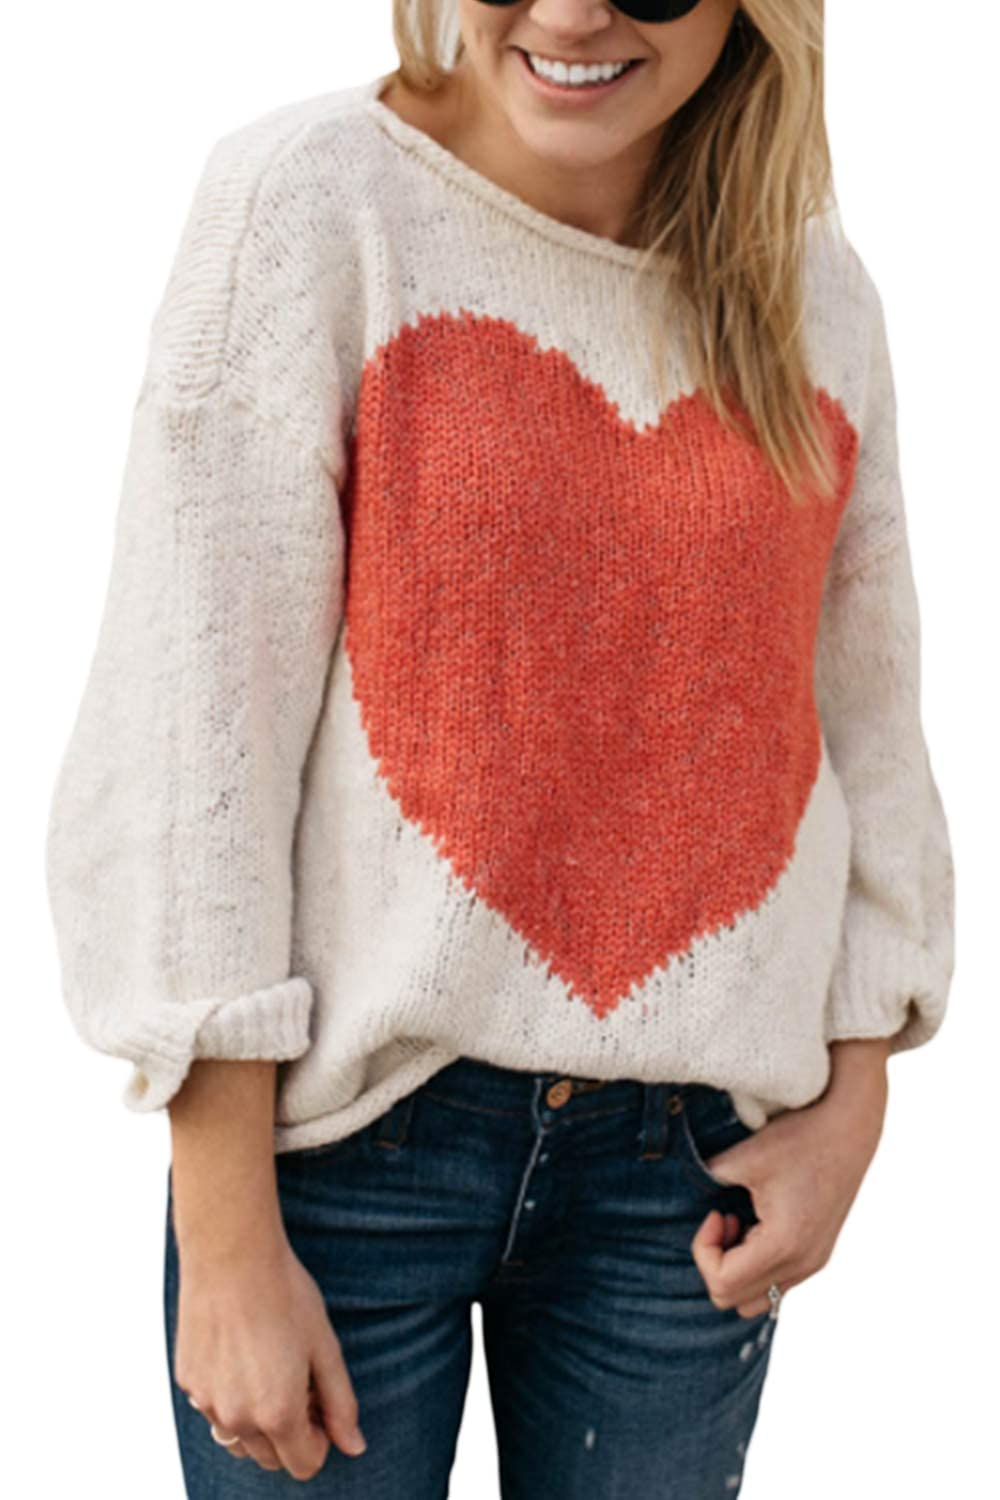 Suvotimo Womens Casual Loose Heart Crew Neck Knit Sweater Tops